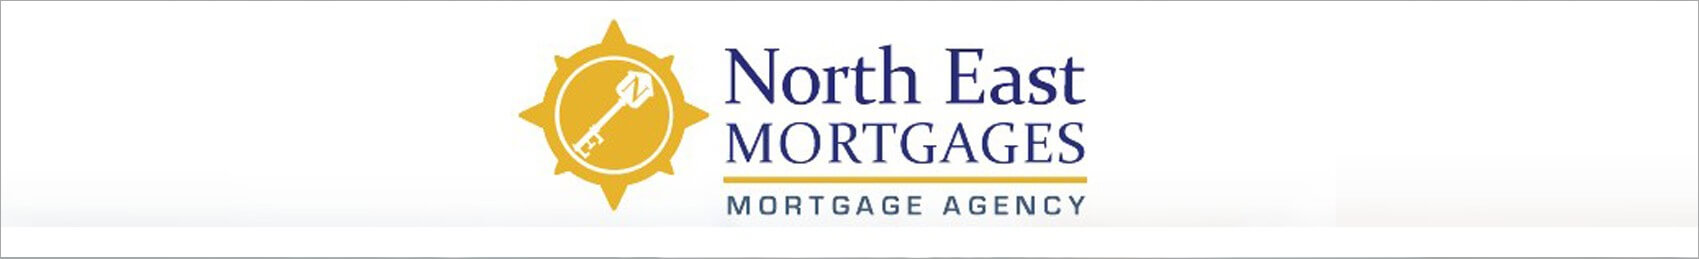 northeast-mortgages-ad